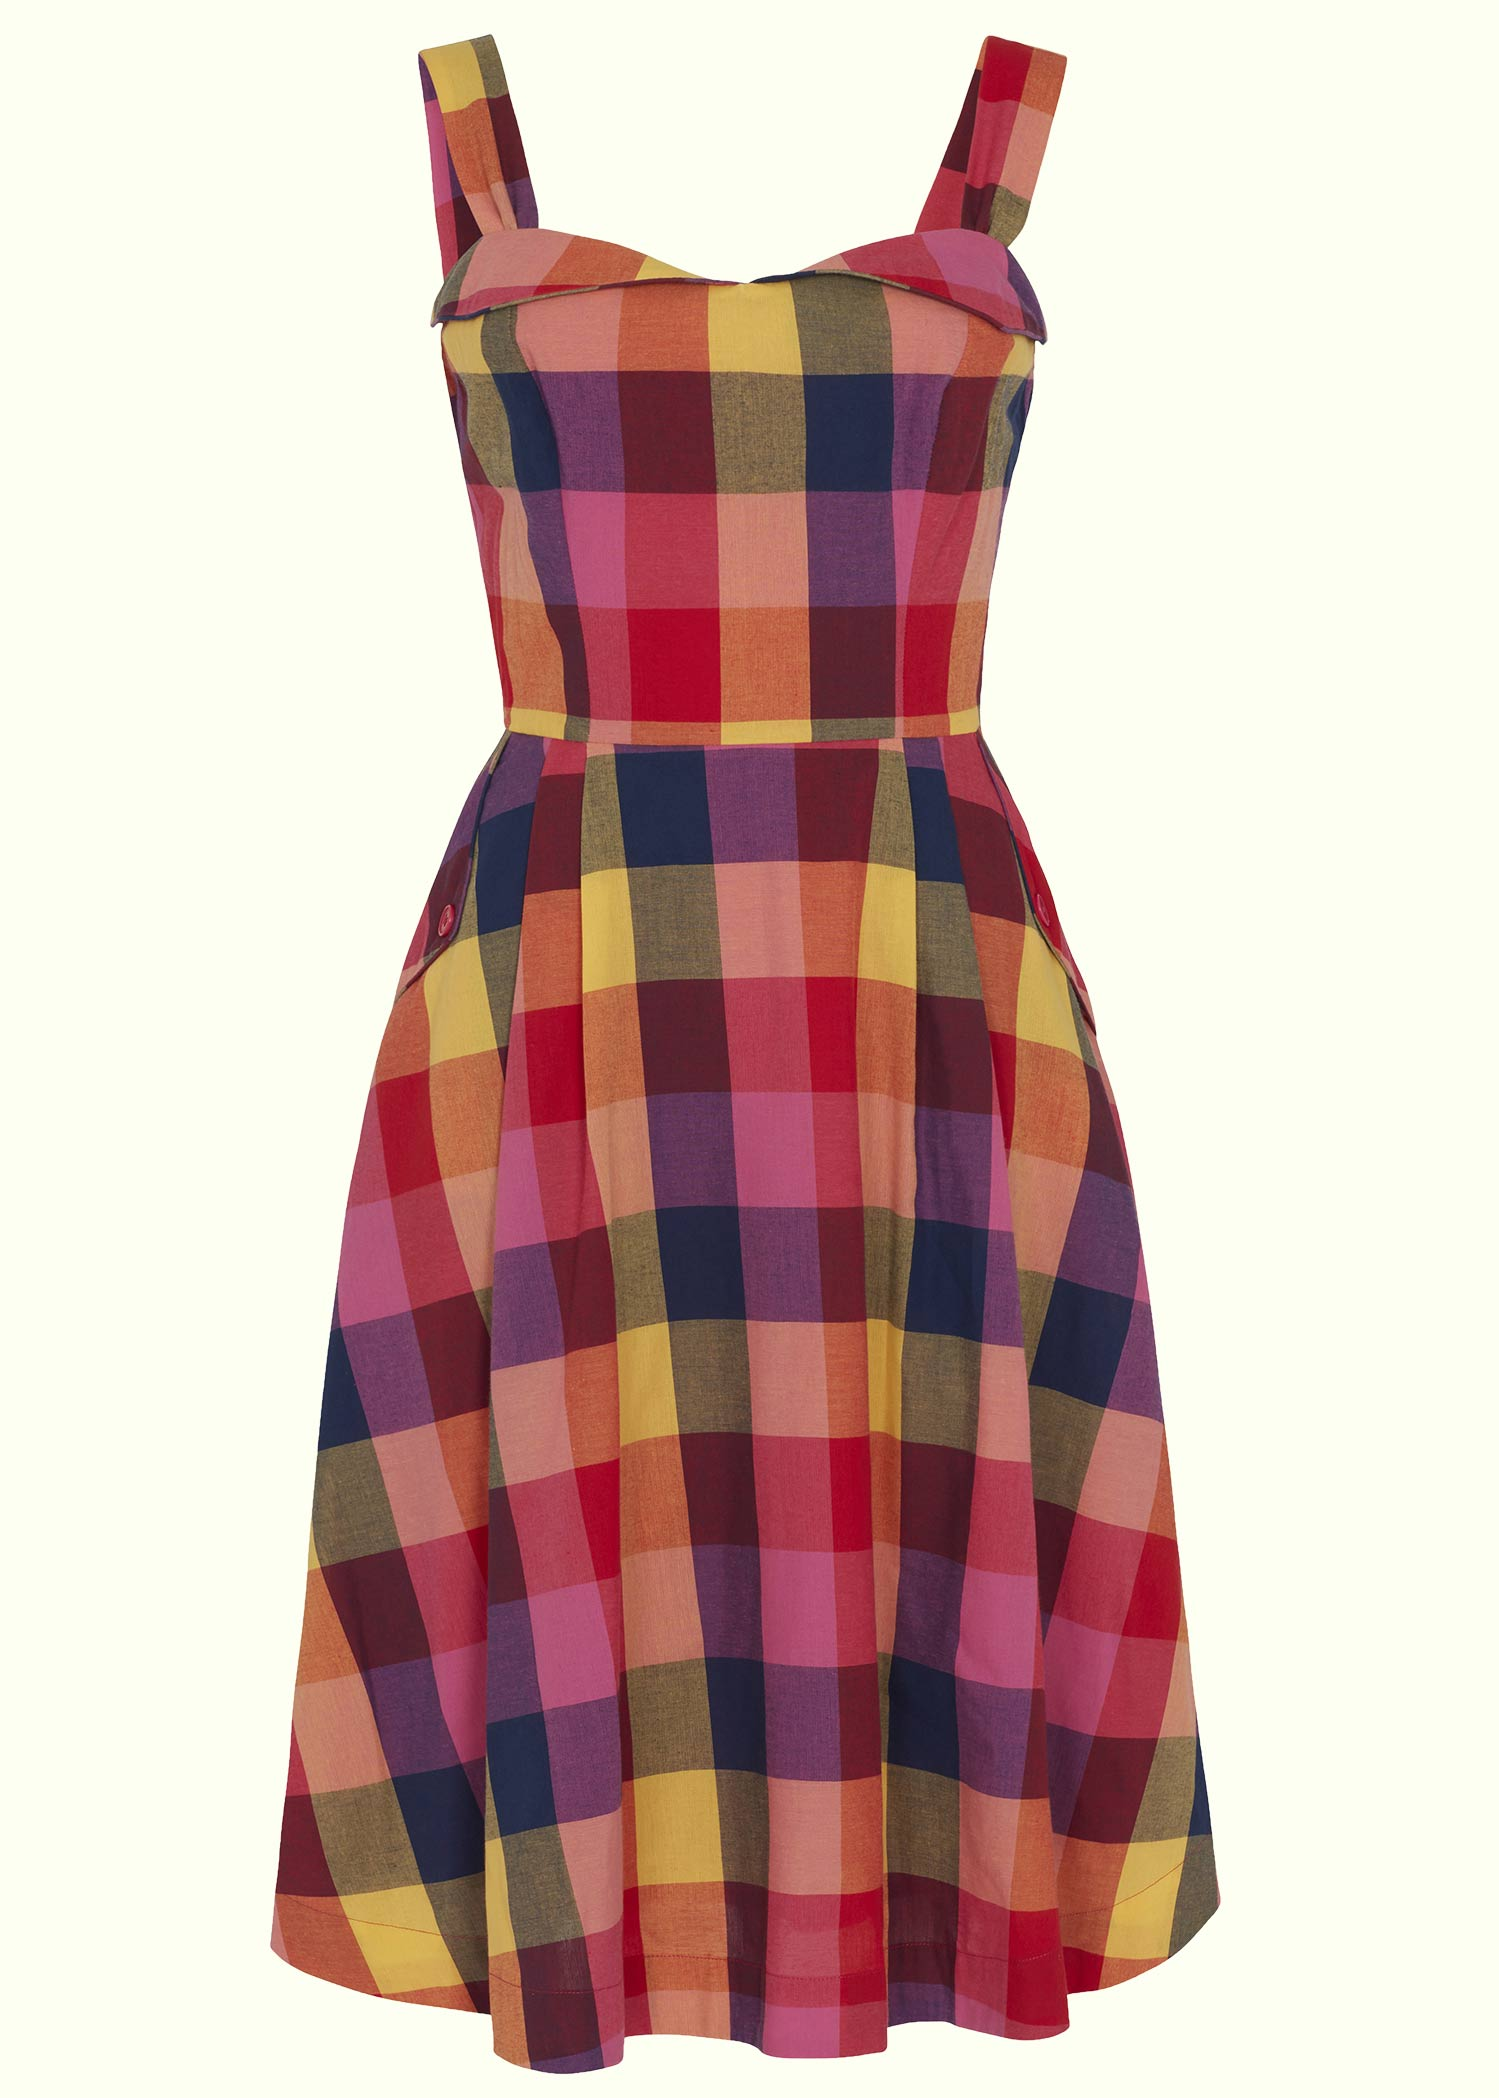 Aline retro checkered summer dress from Emily and fin